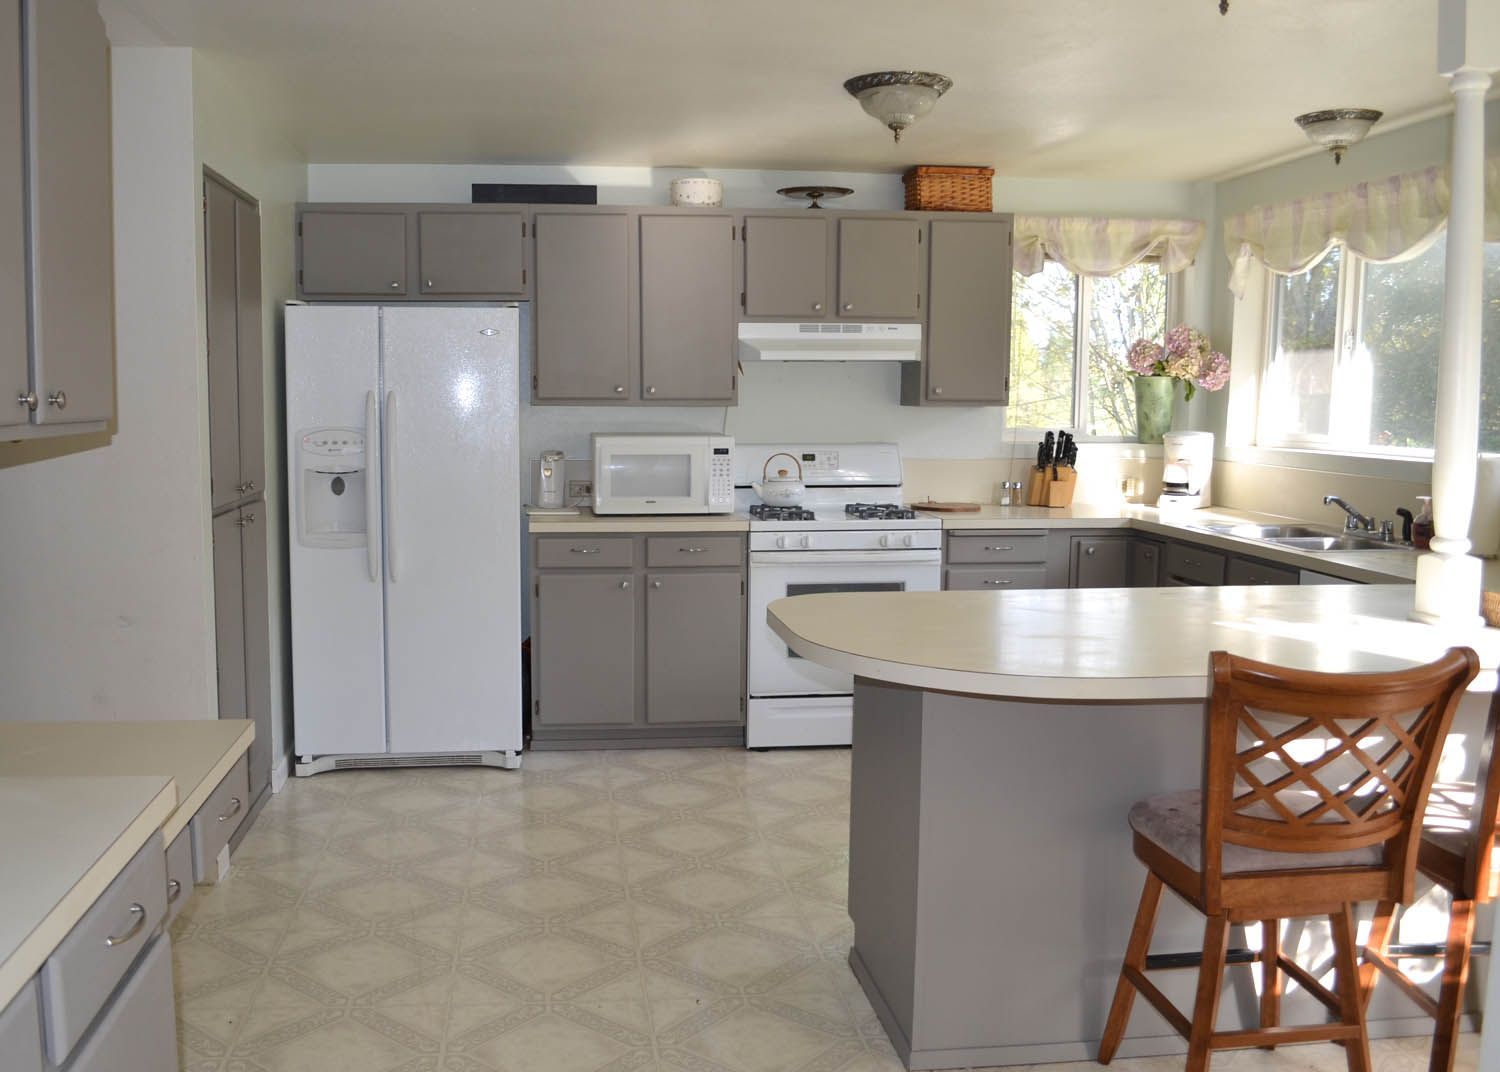 Steps Resurfacing Kitchen Cabinets In 2020 Repainting Kitchen Cabinets Painting Kitchen Cabinets Kitchen Cabinets